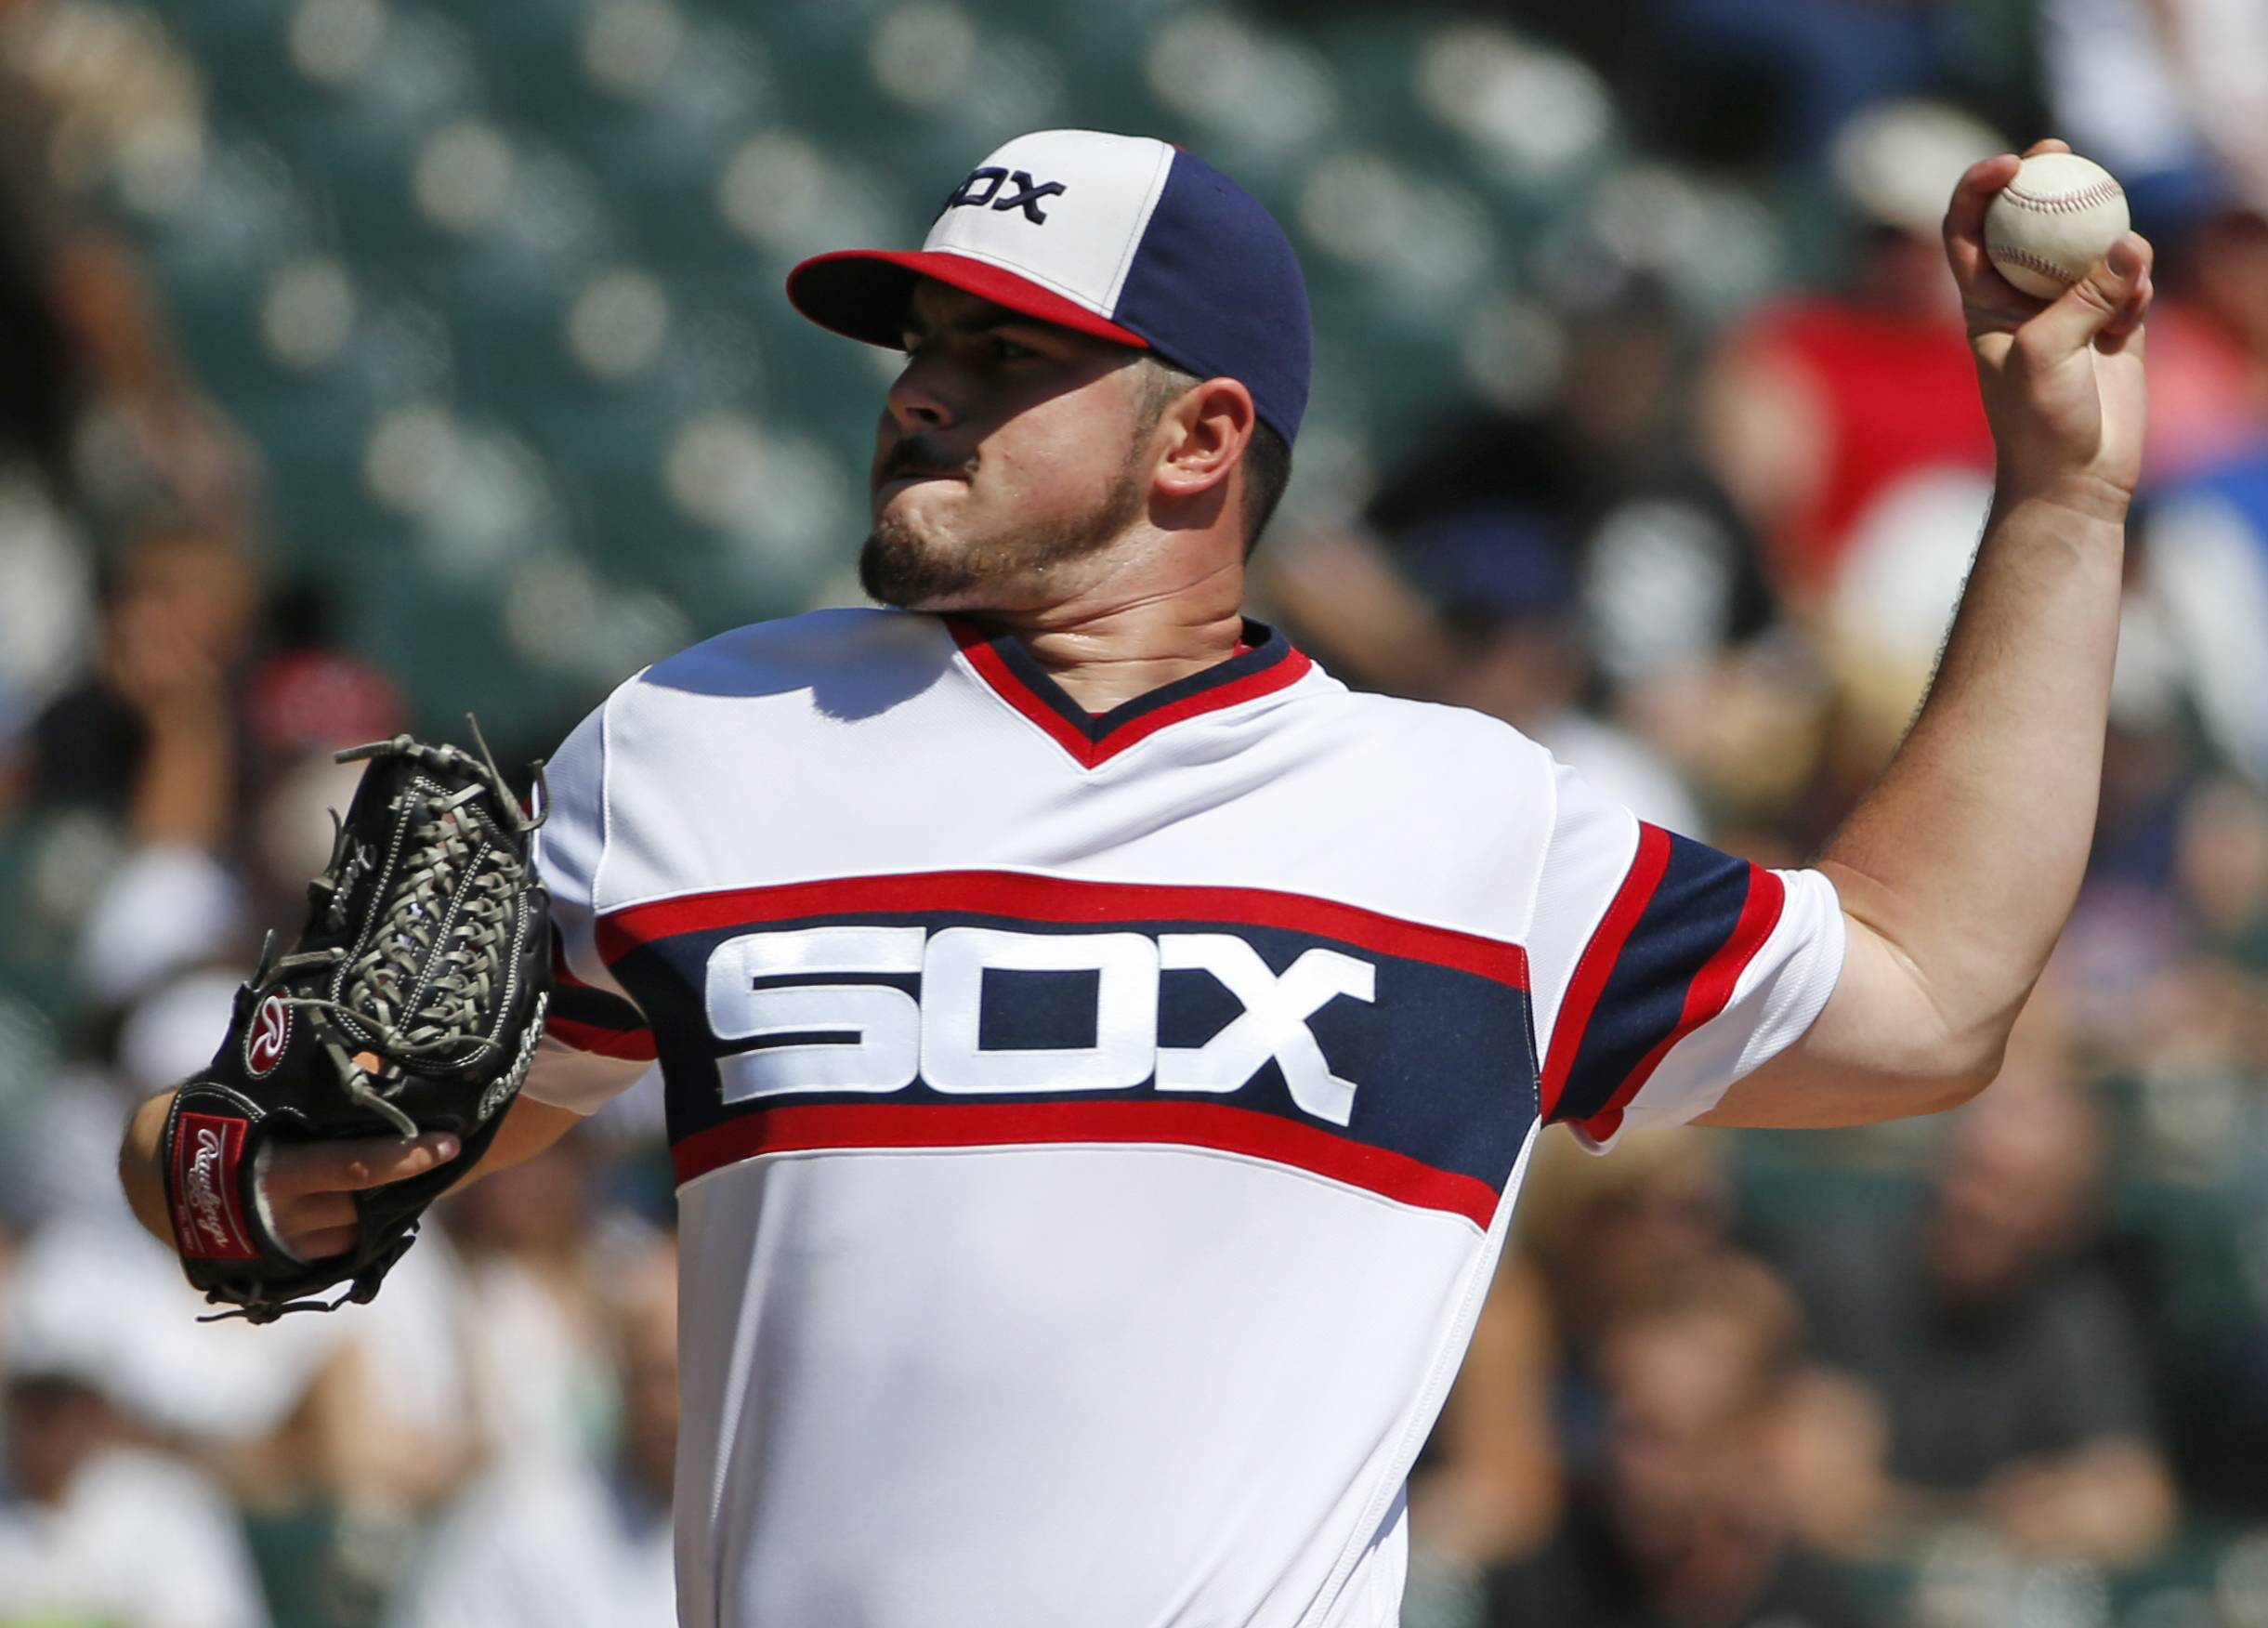 Chicago White Sox starter Carlos Rodon throws against the Seattle Mariners during the first inning of a baseball game in Chicago, Sunday, Aug. 28, 2016.